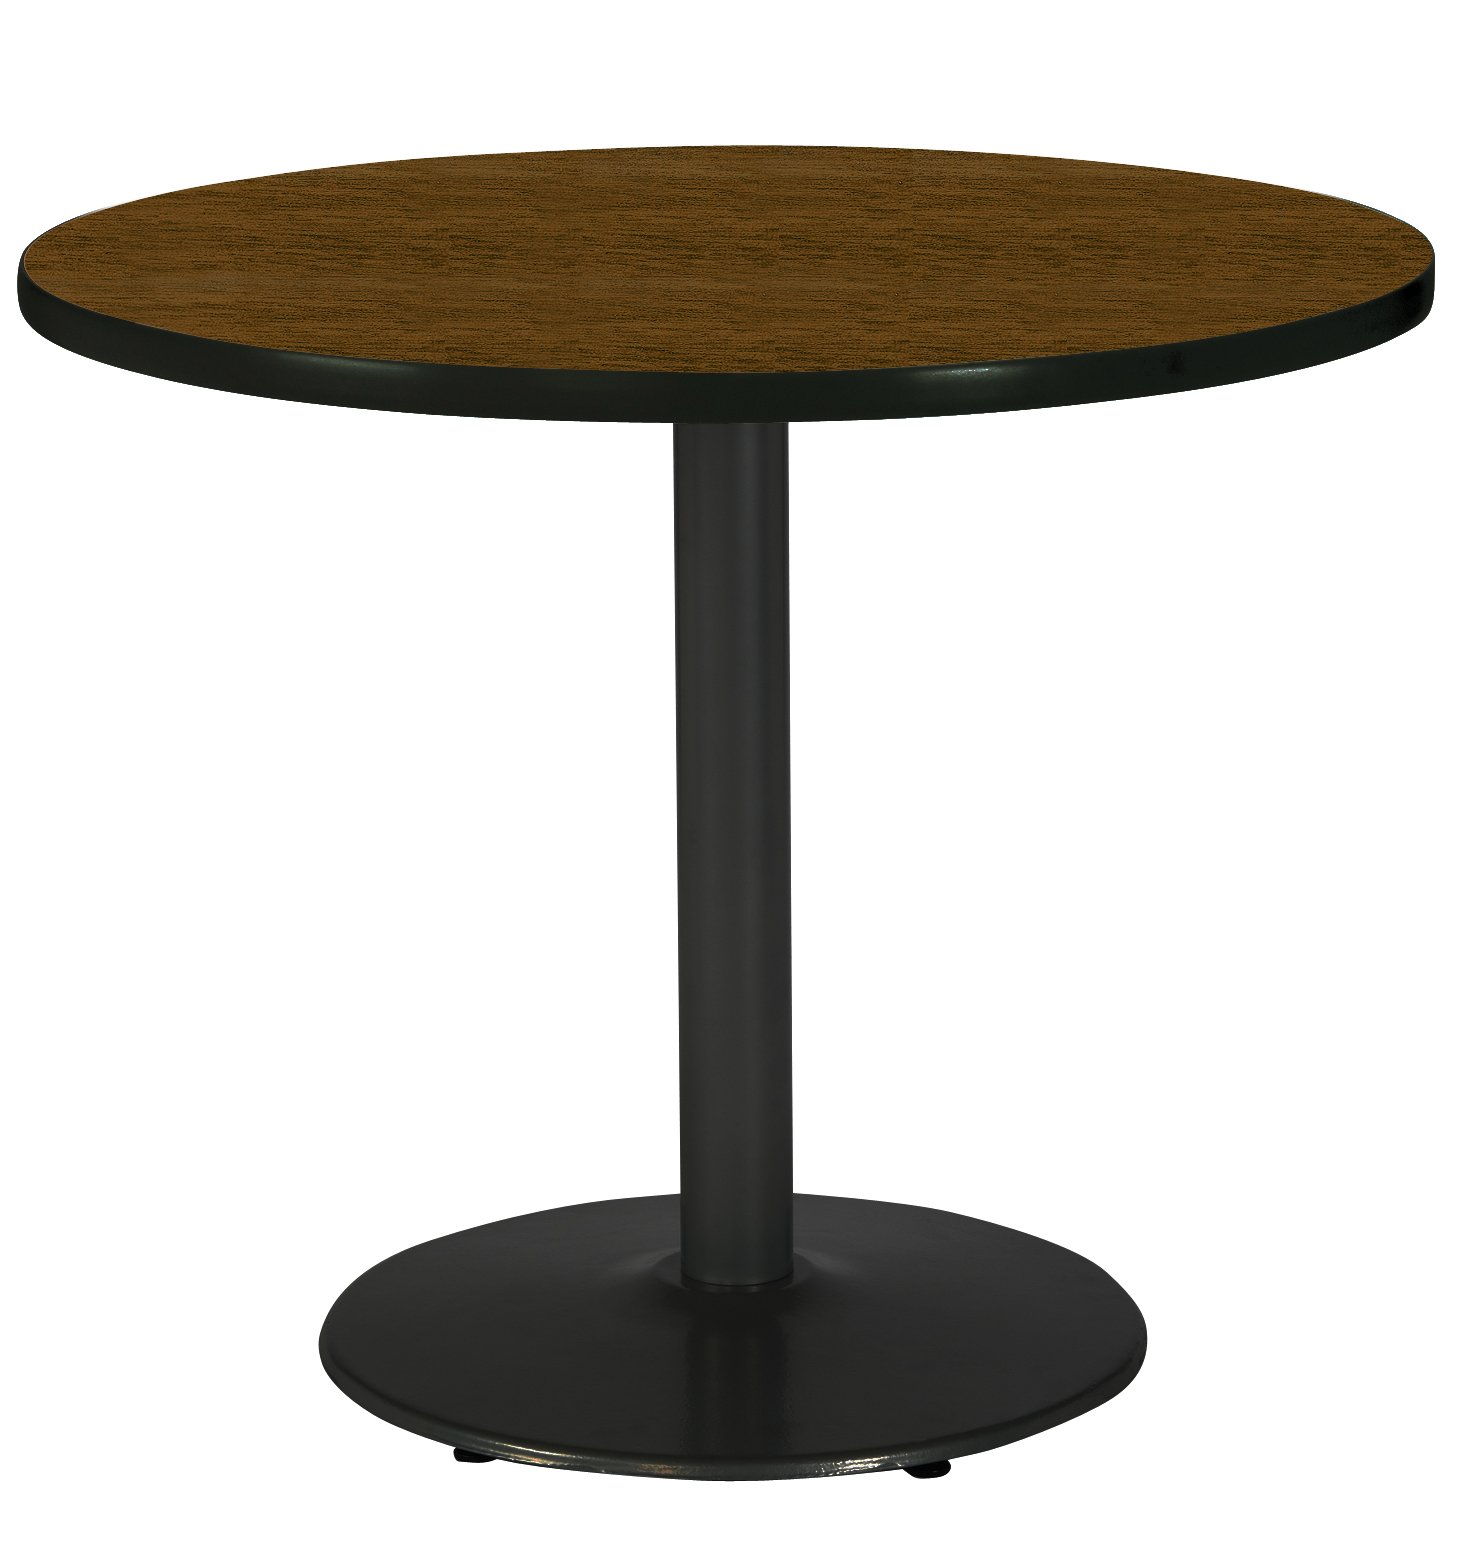 KFI Seating Round Black Base Pedestal Table with Top, Walnut, 42''